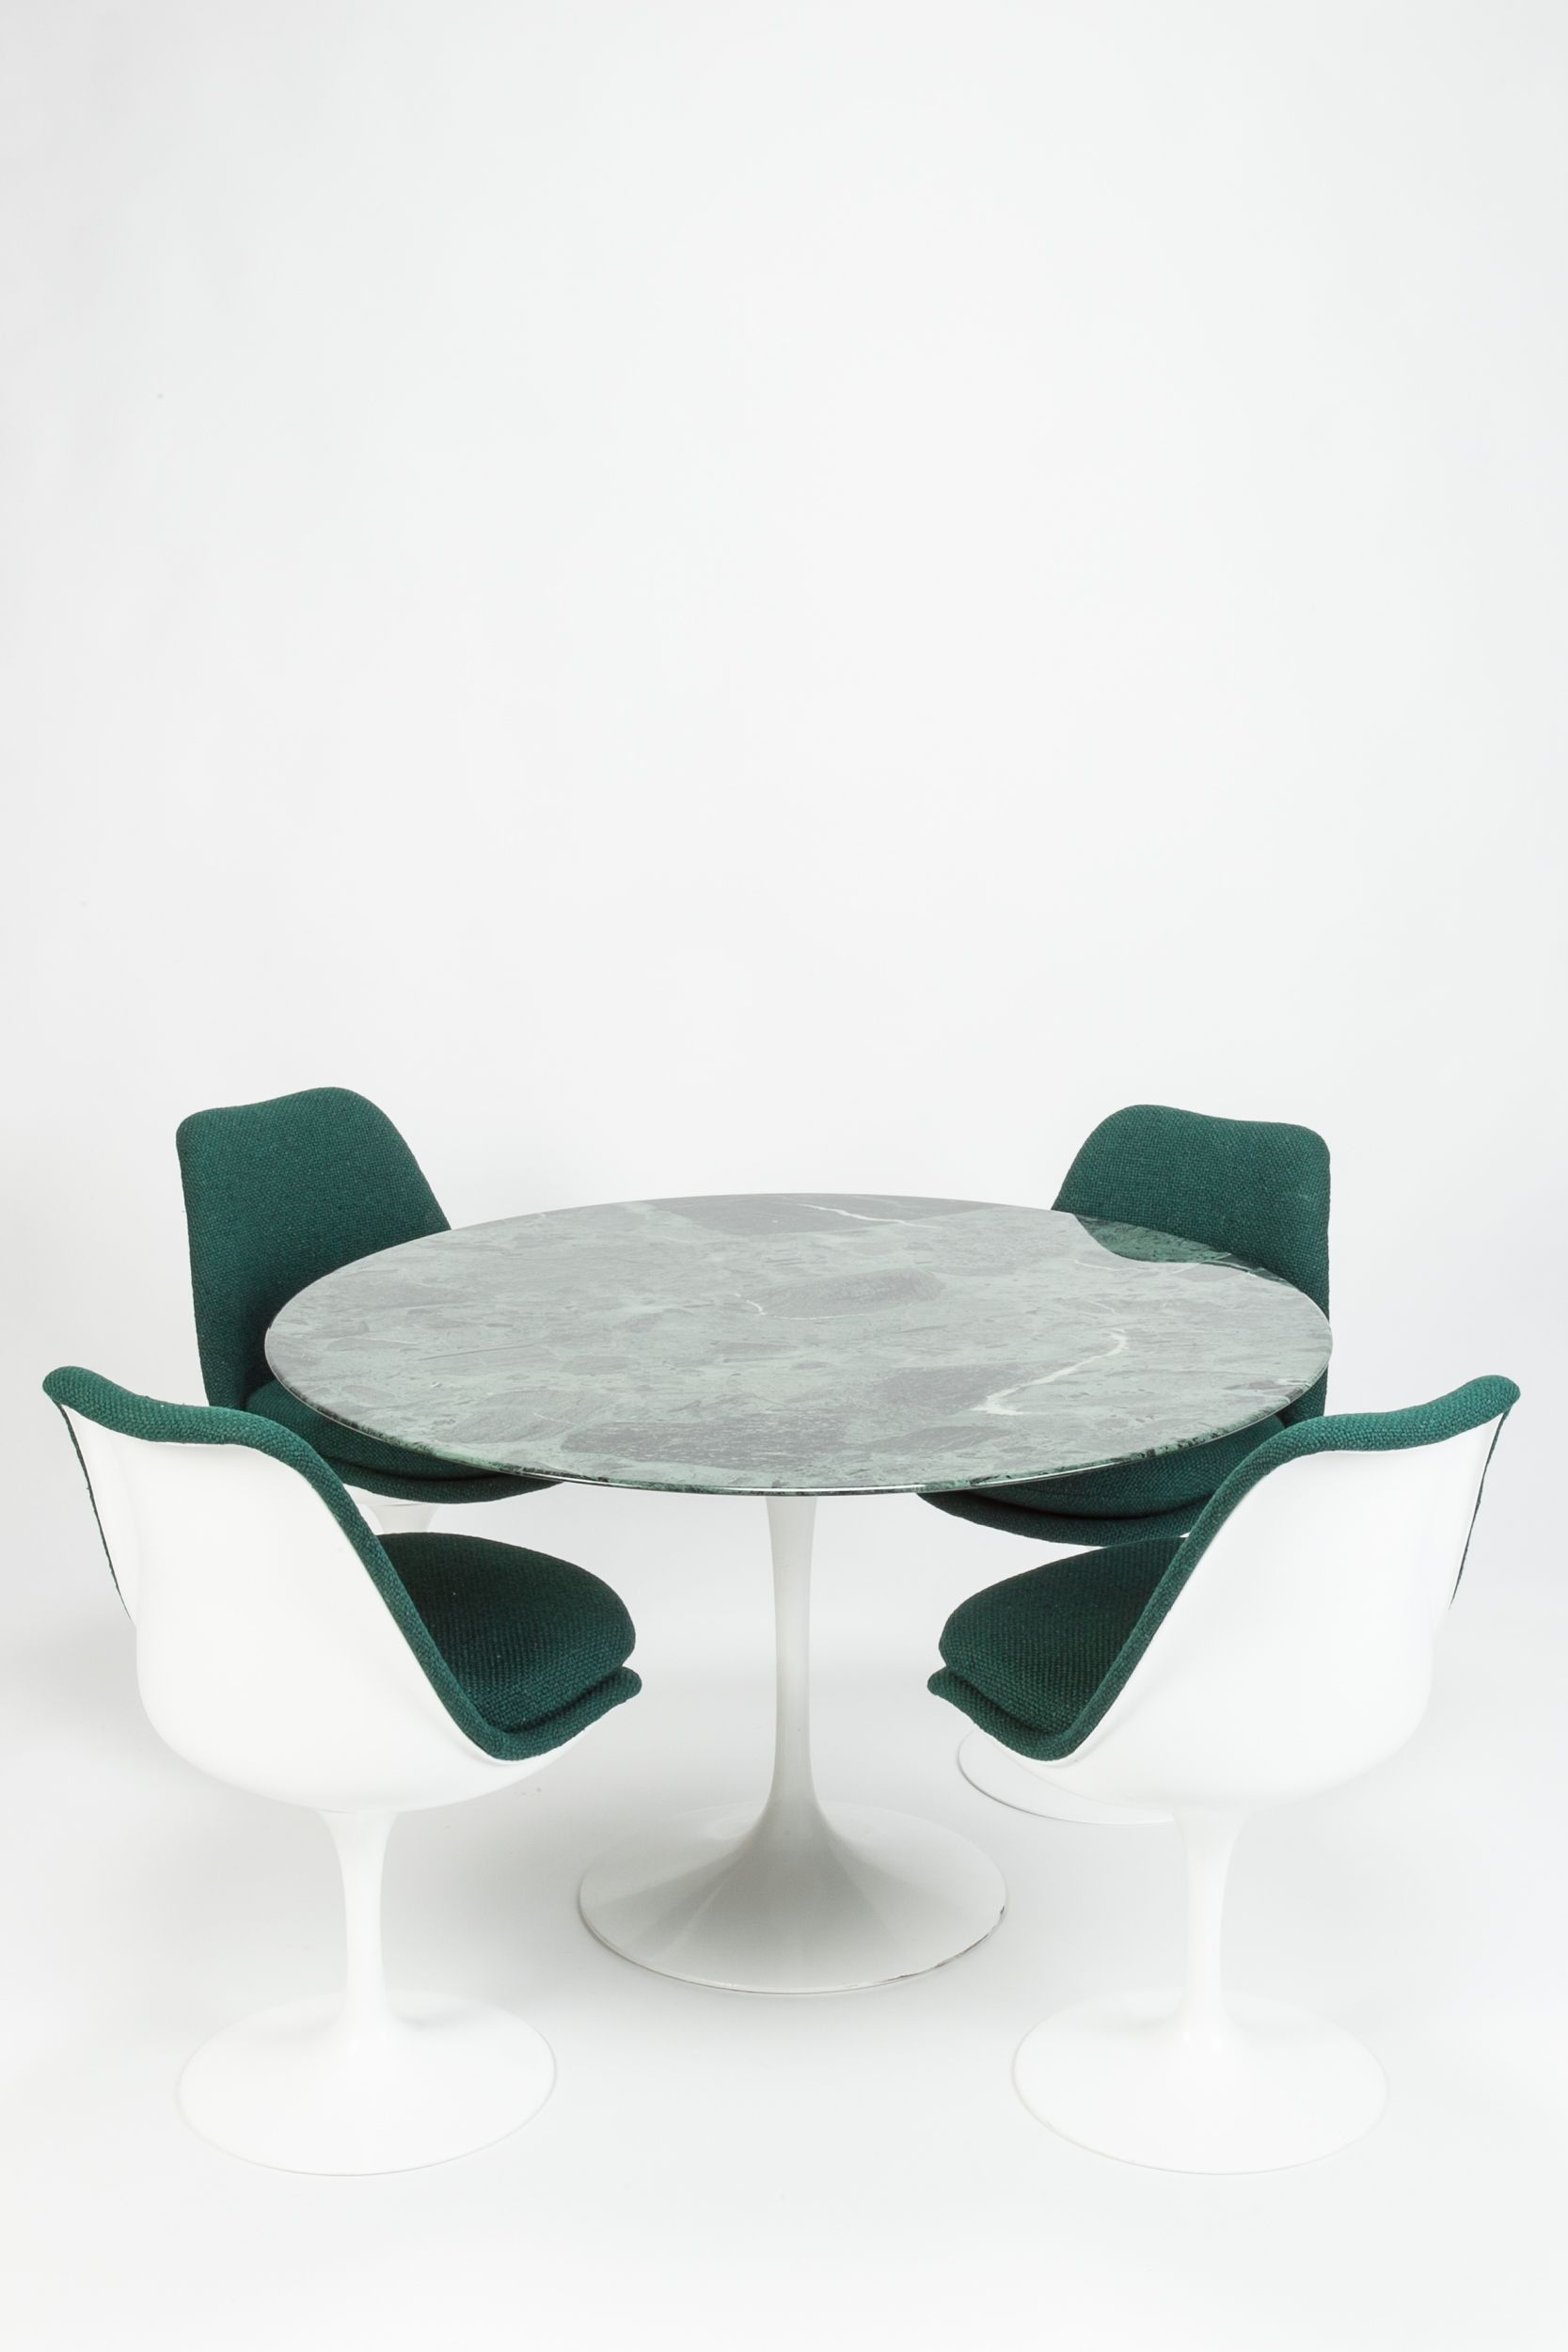 Saarinen Ensemble Marmor Grun Okay Art In 2020 Eero Saarinen Dining Table Marble Table Marble Tables Design